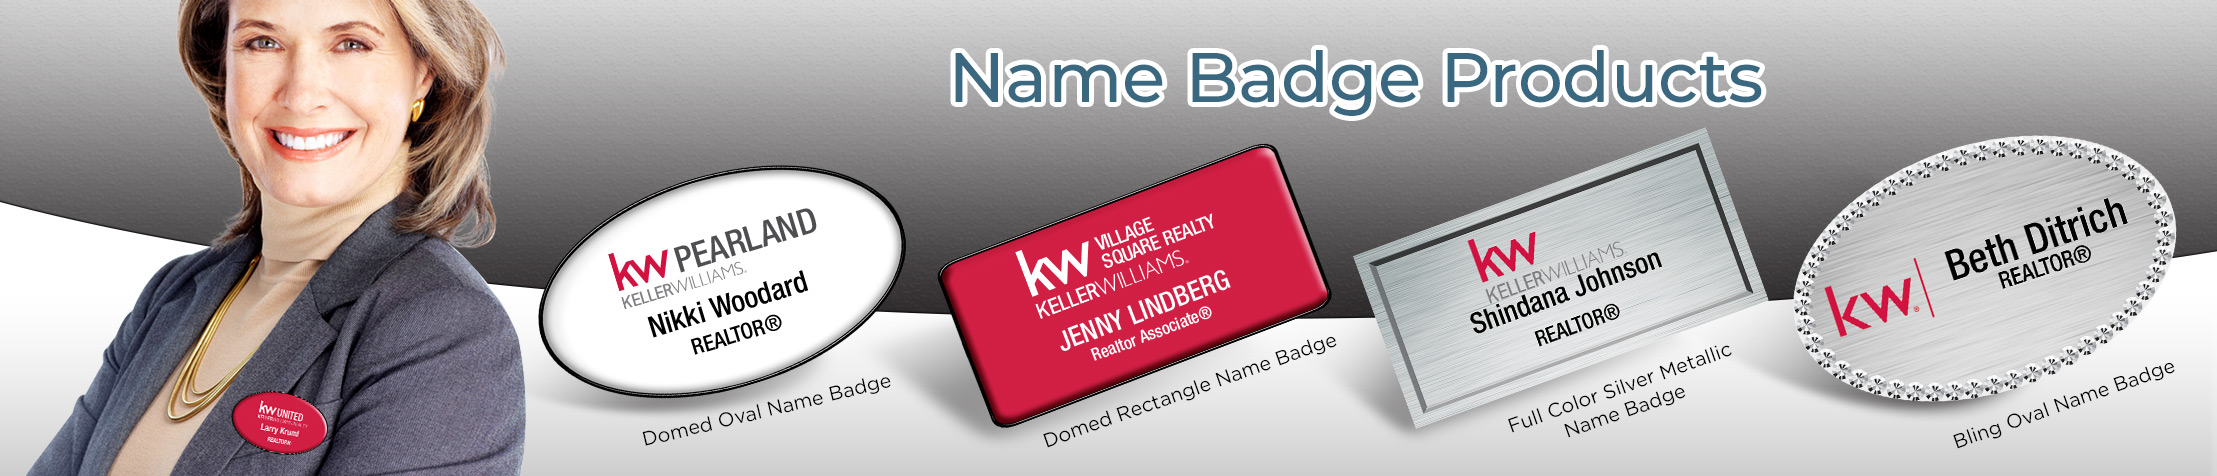 Keller Williams Real Estate Name Badge Products - KW Approved Vendor Name Tags for Realtors | BestPrintBuy.com